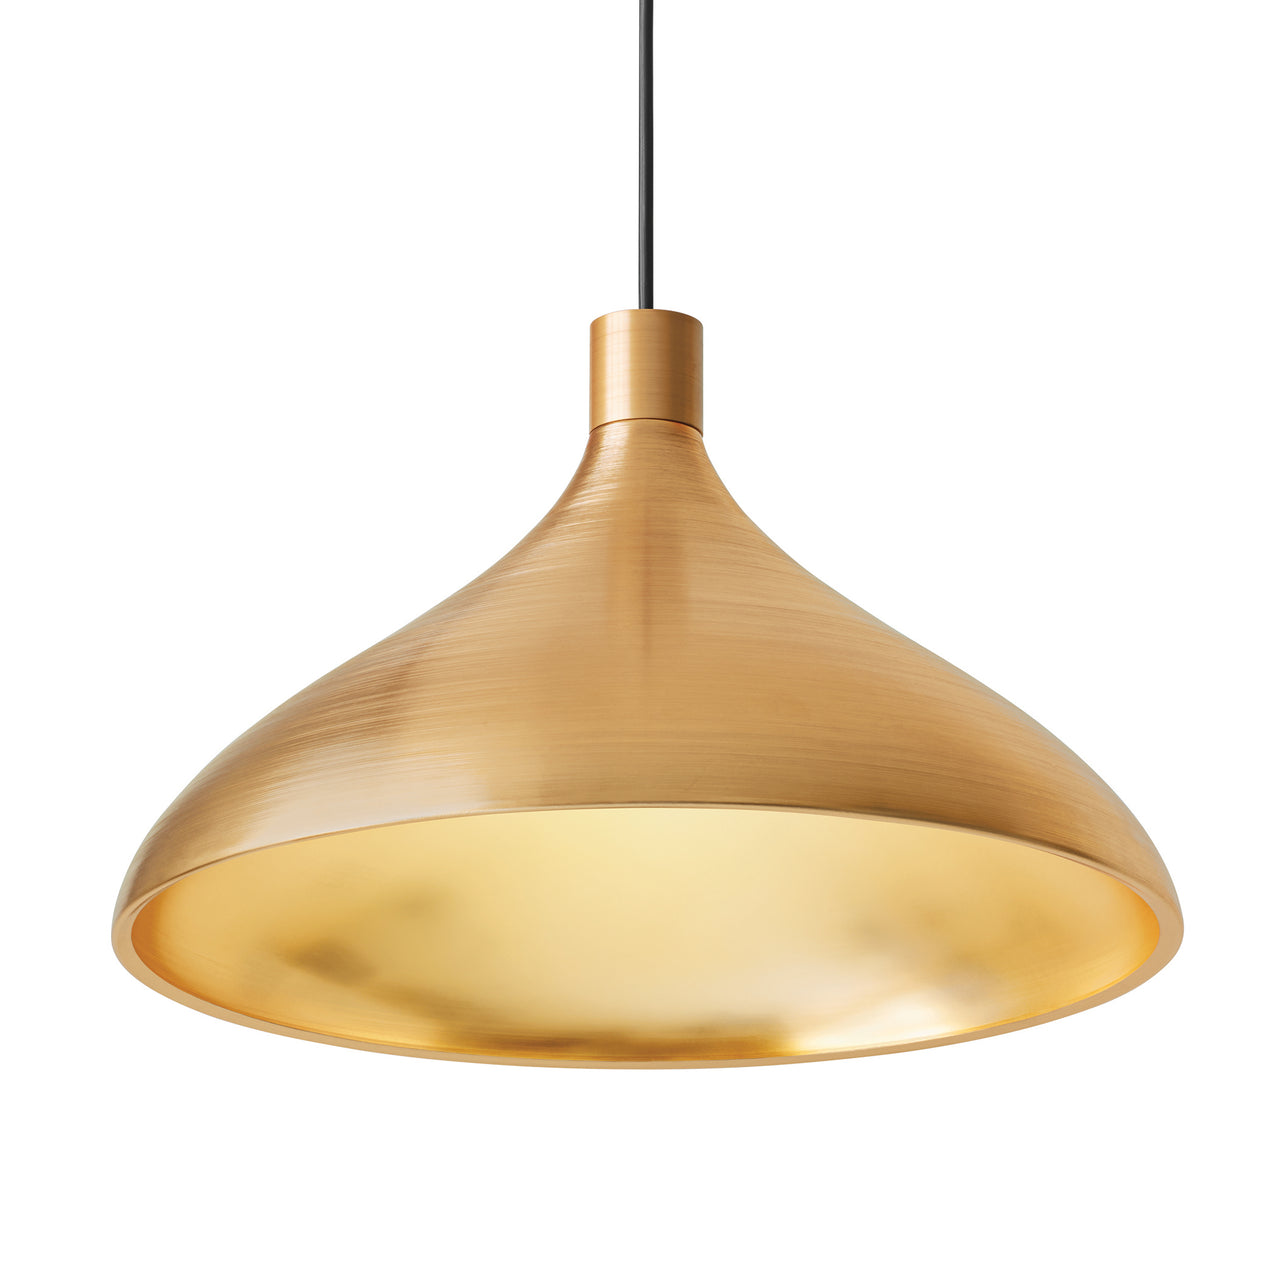 Swell Single Indoor/Outdoor Pendant Light